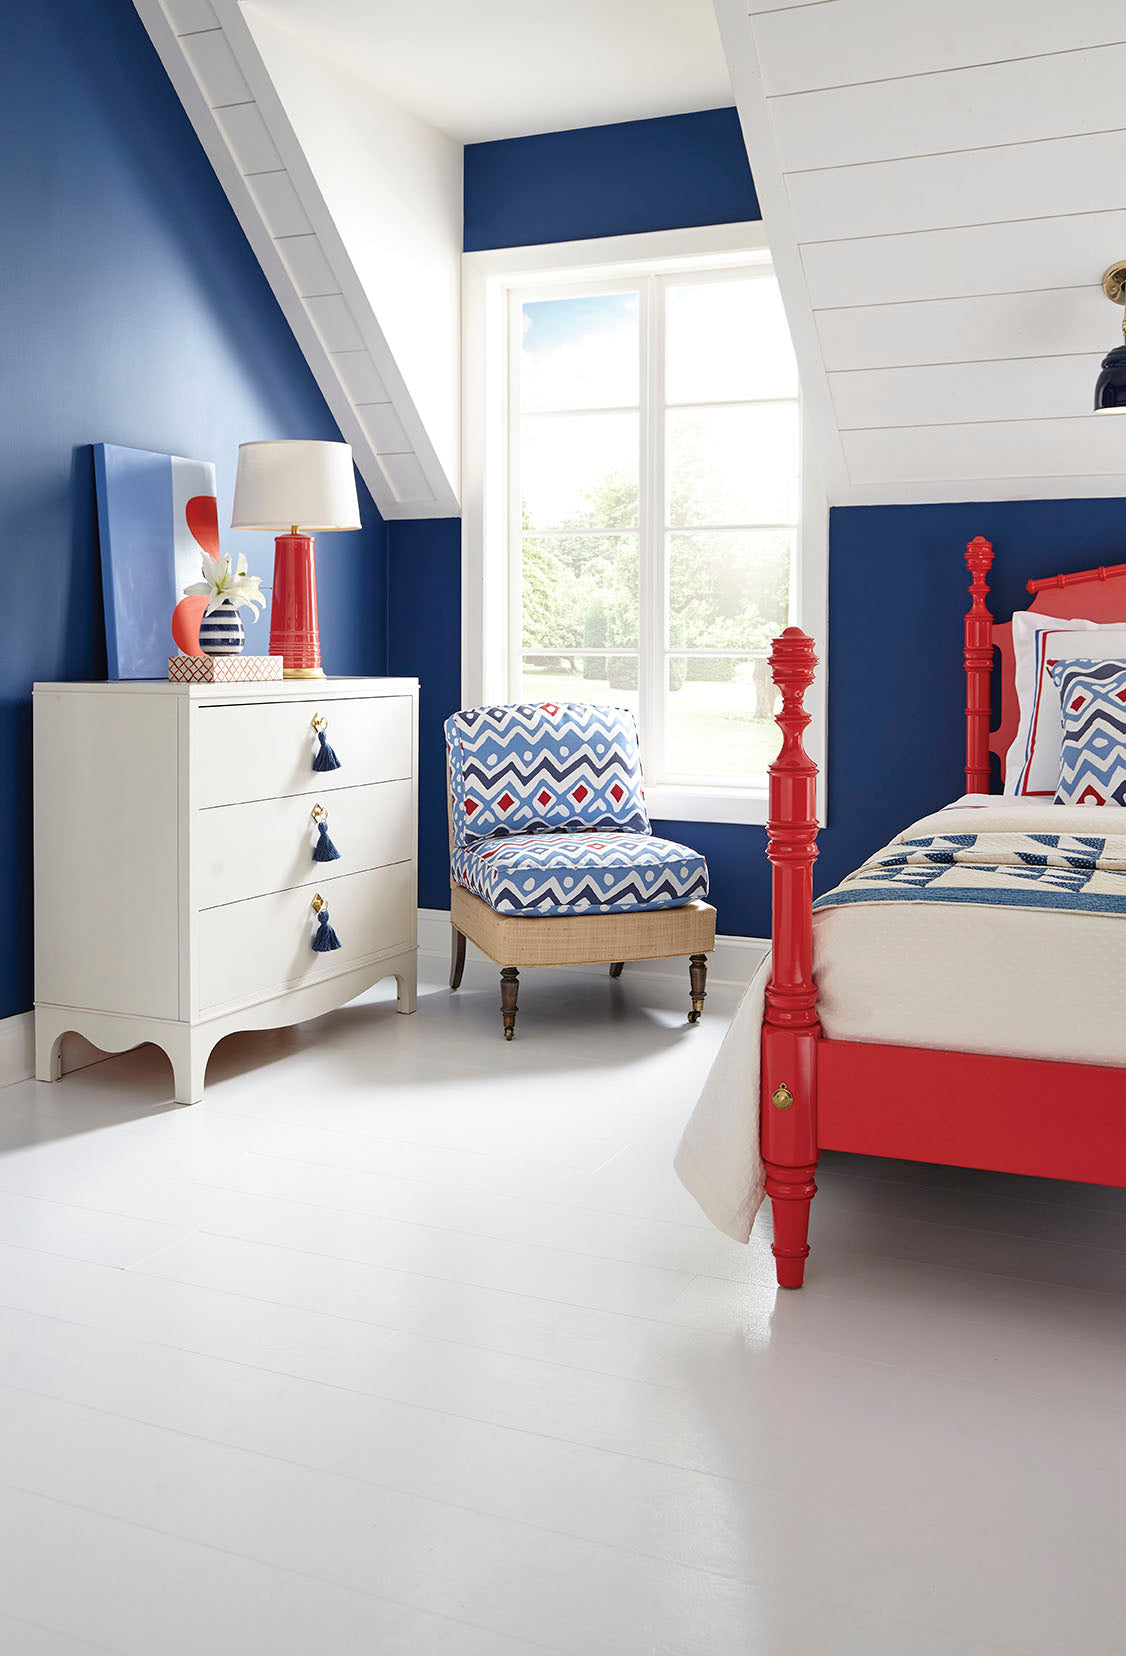 Wilton 4-Poster Bed